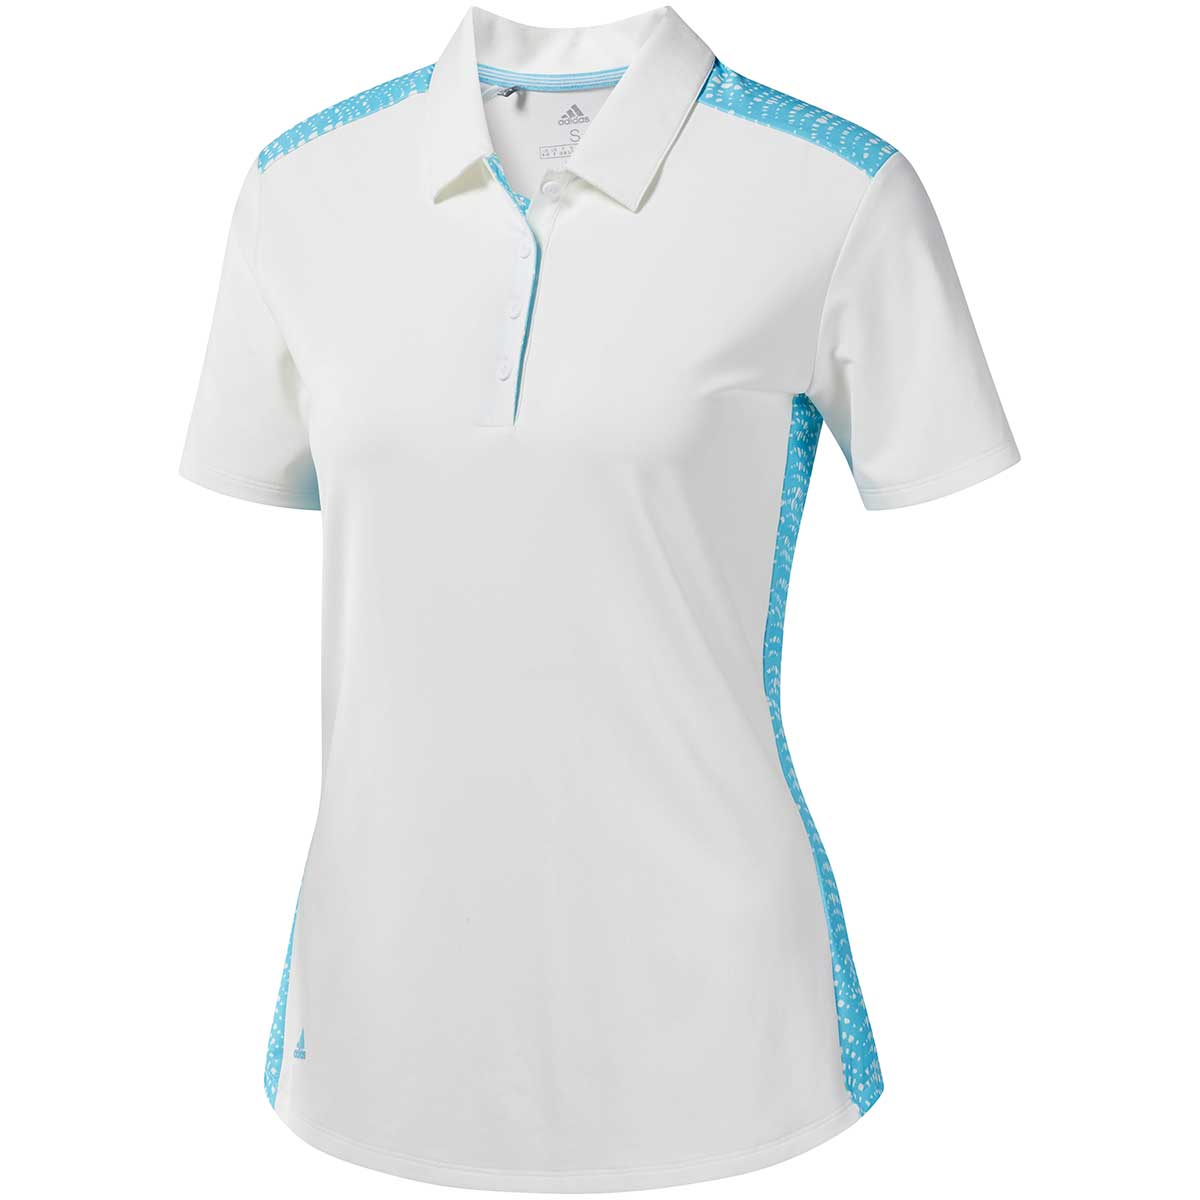 Adidas Women's Ultimate365 Novelty Polo Shirt - White/Cyan